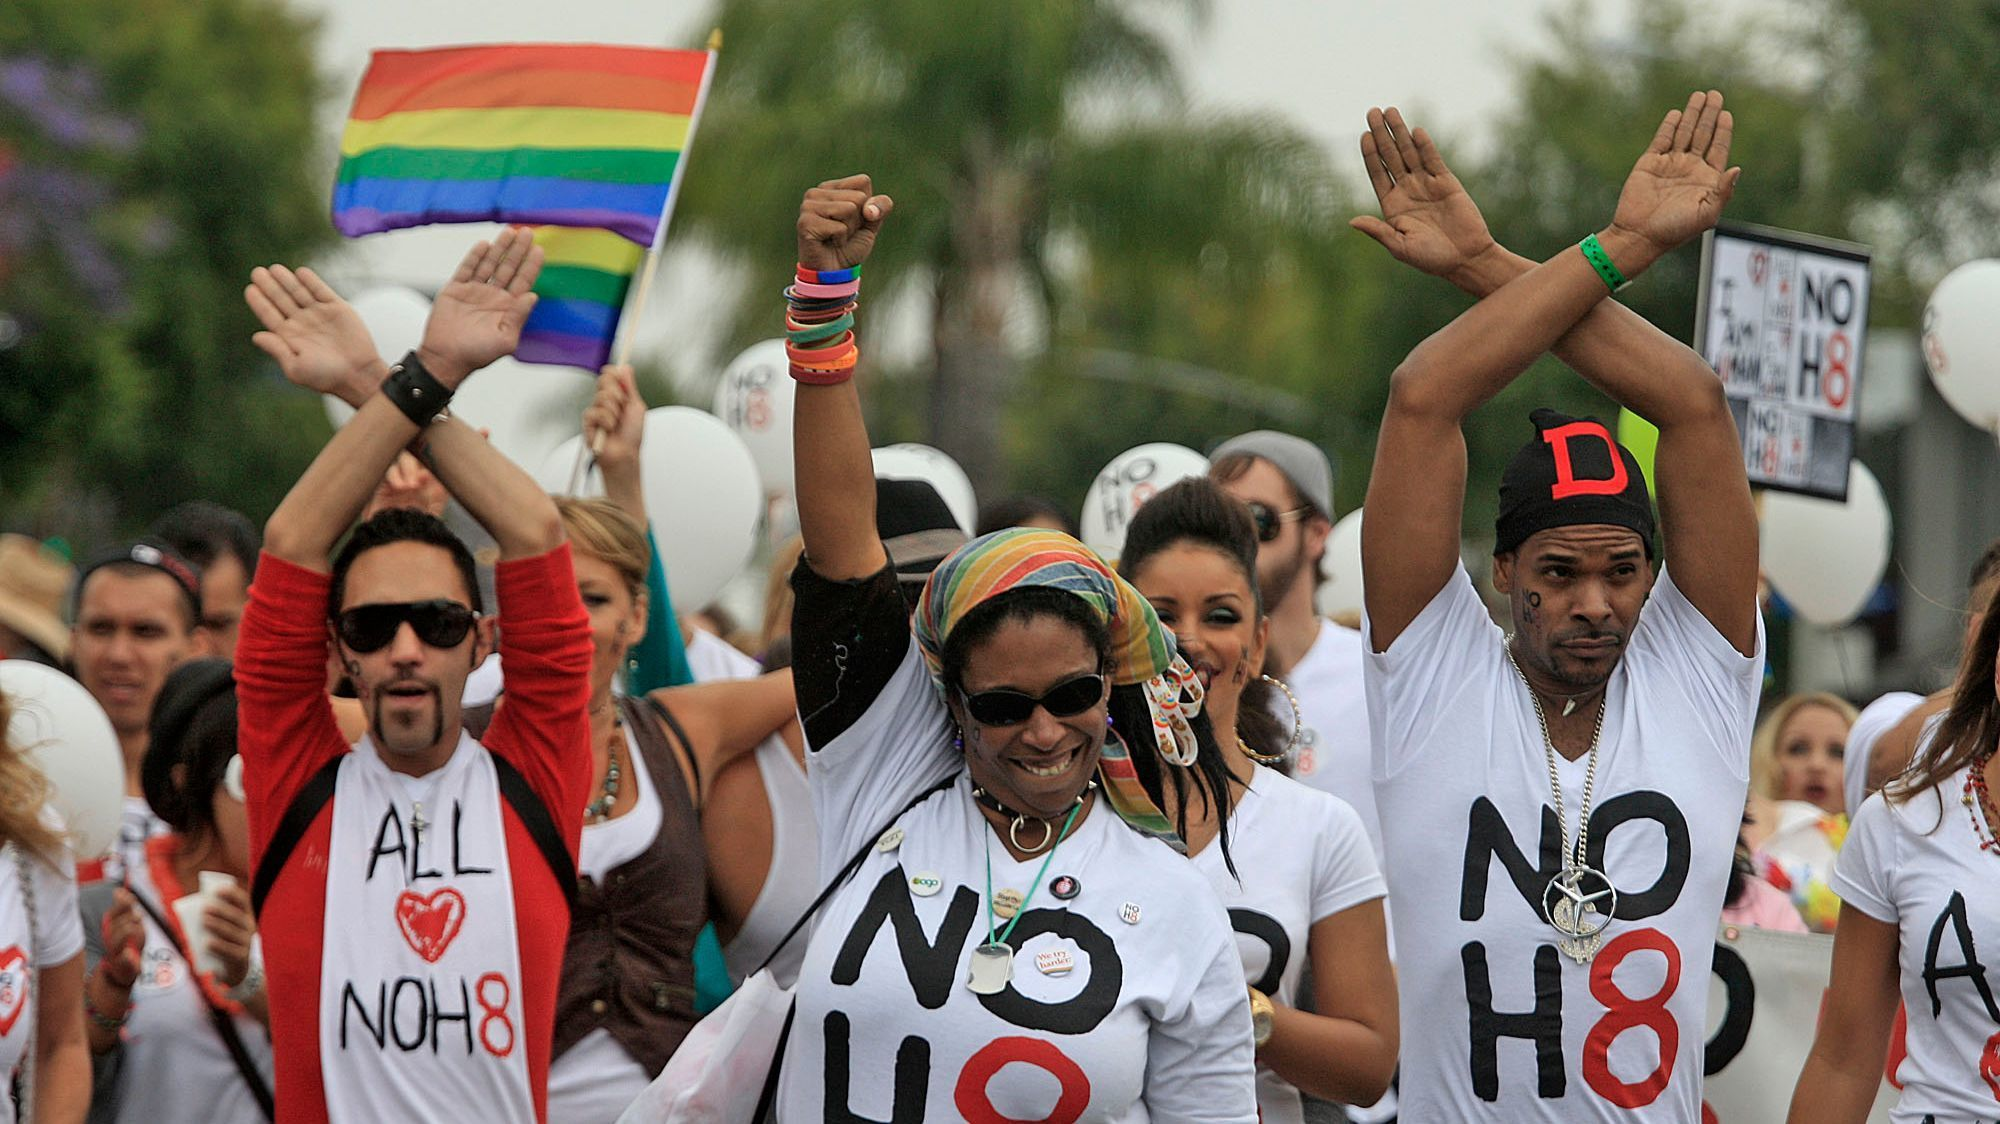 NOH8 participates during the LA Pride Parade on June 12, 2011.